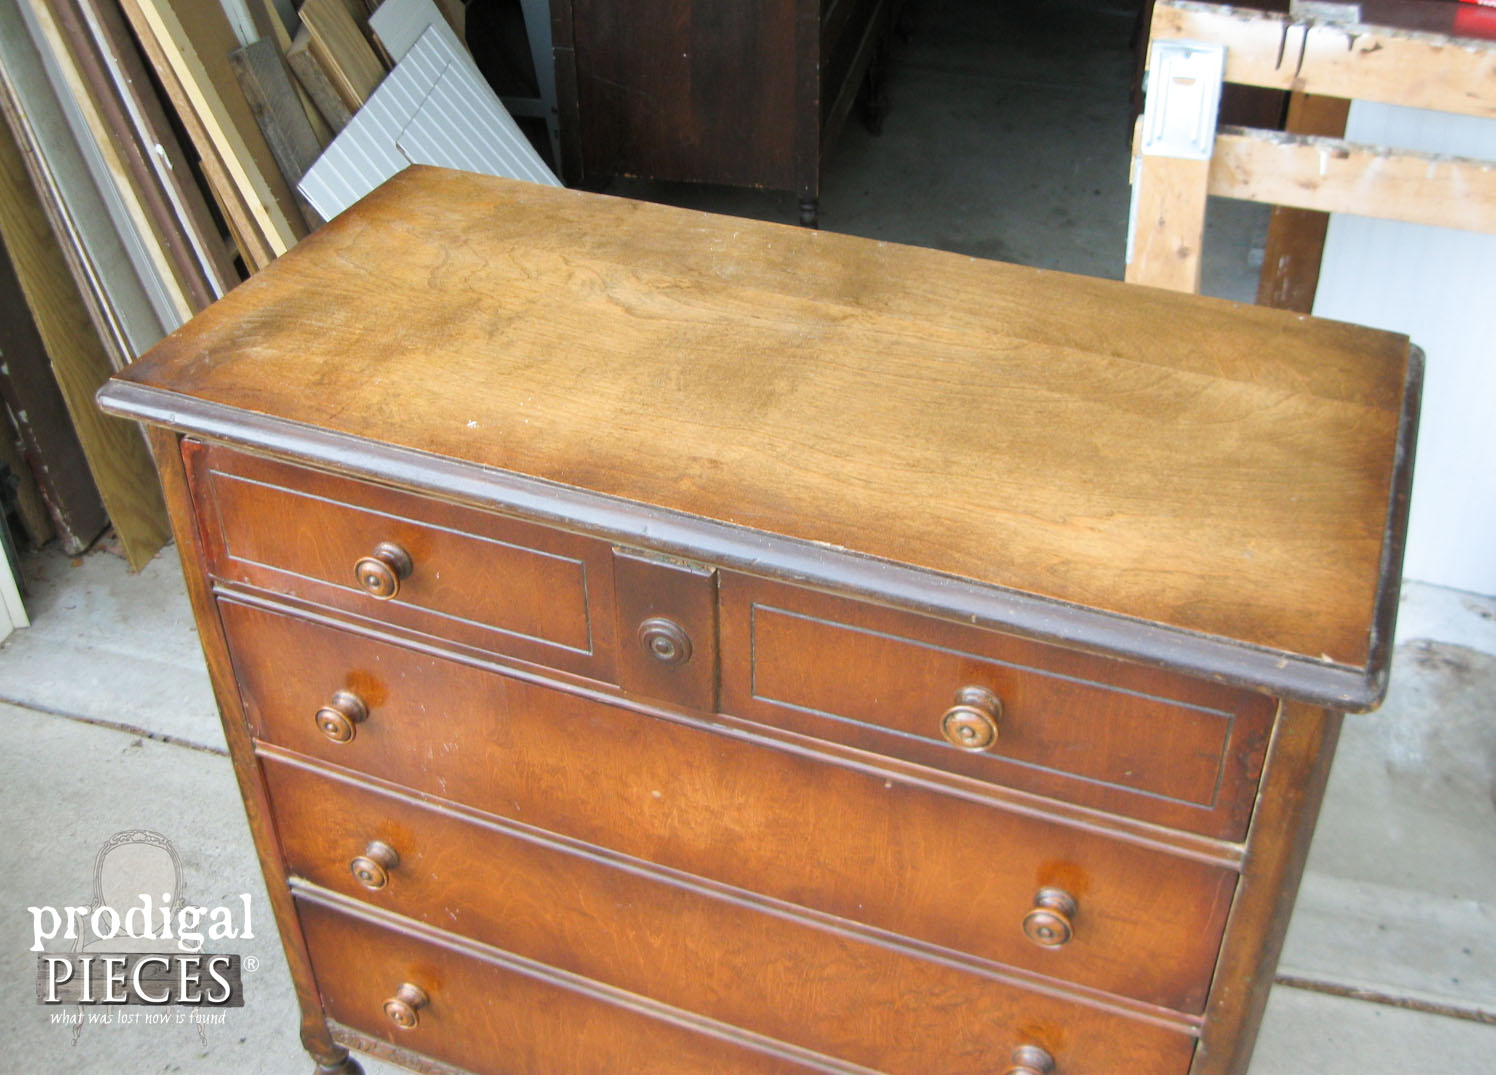 Top of Vintage Chest of Drawers for Distressing | Prodigal Pieces | www.prodigalpieces.com